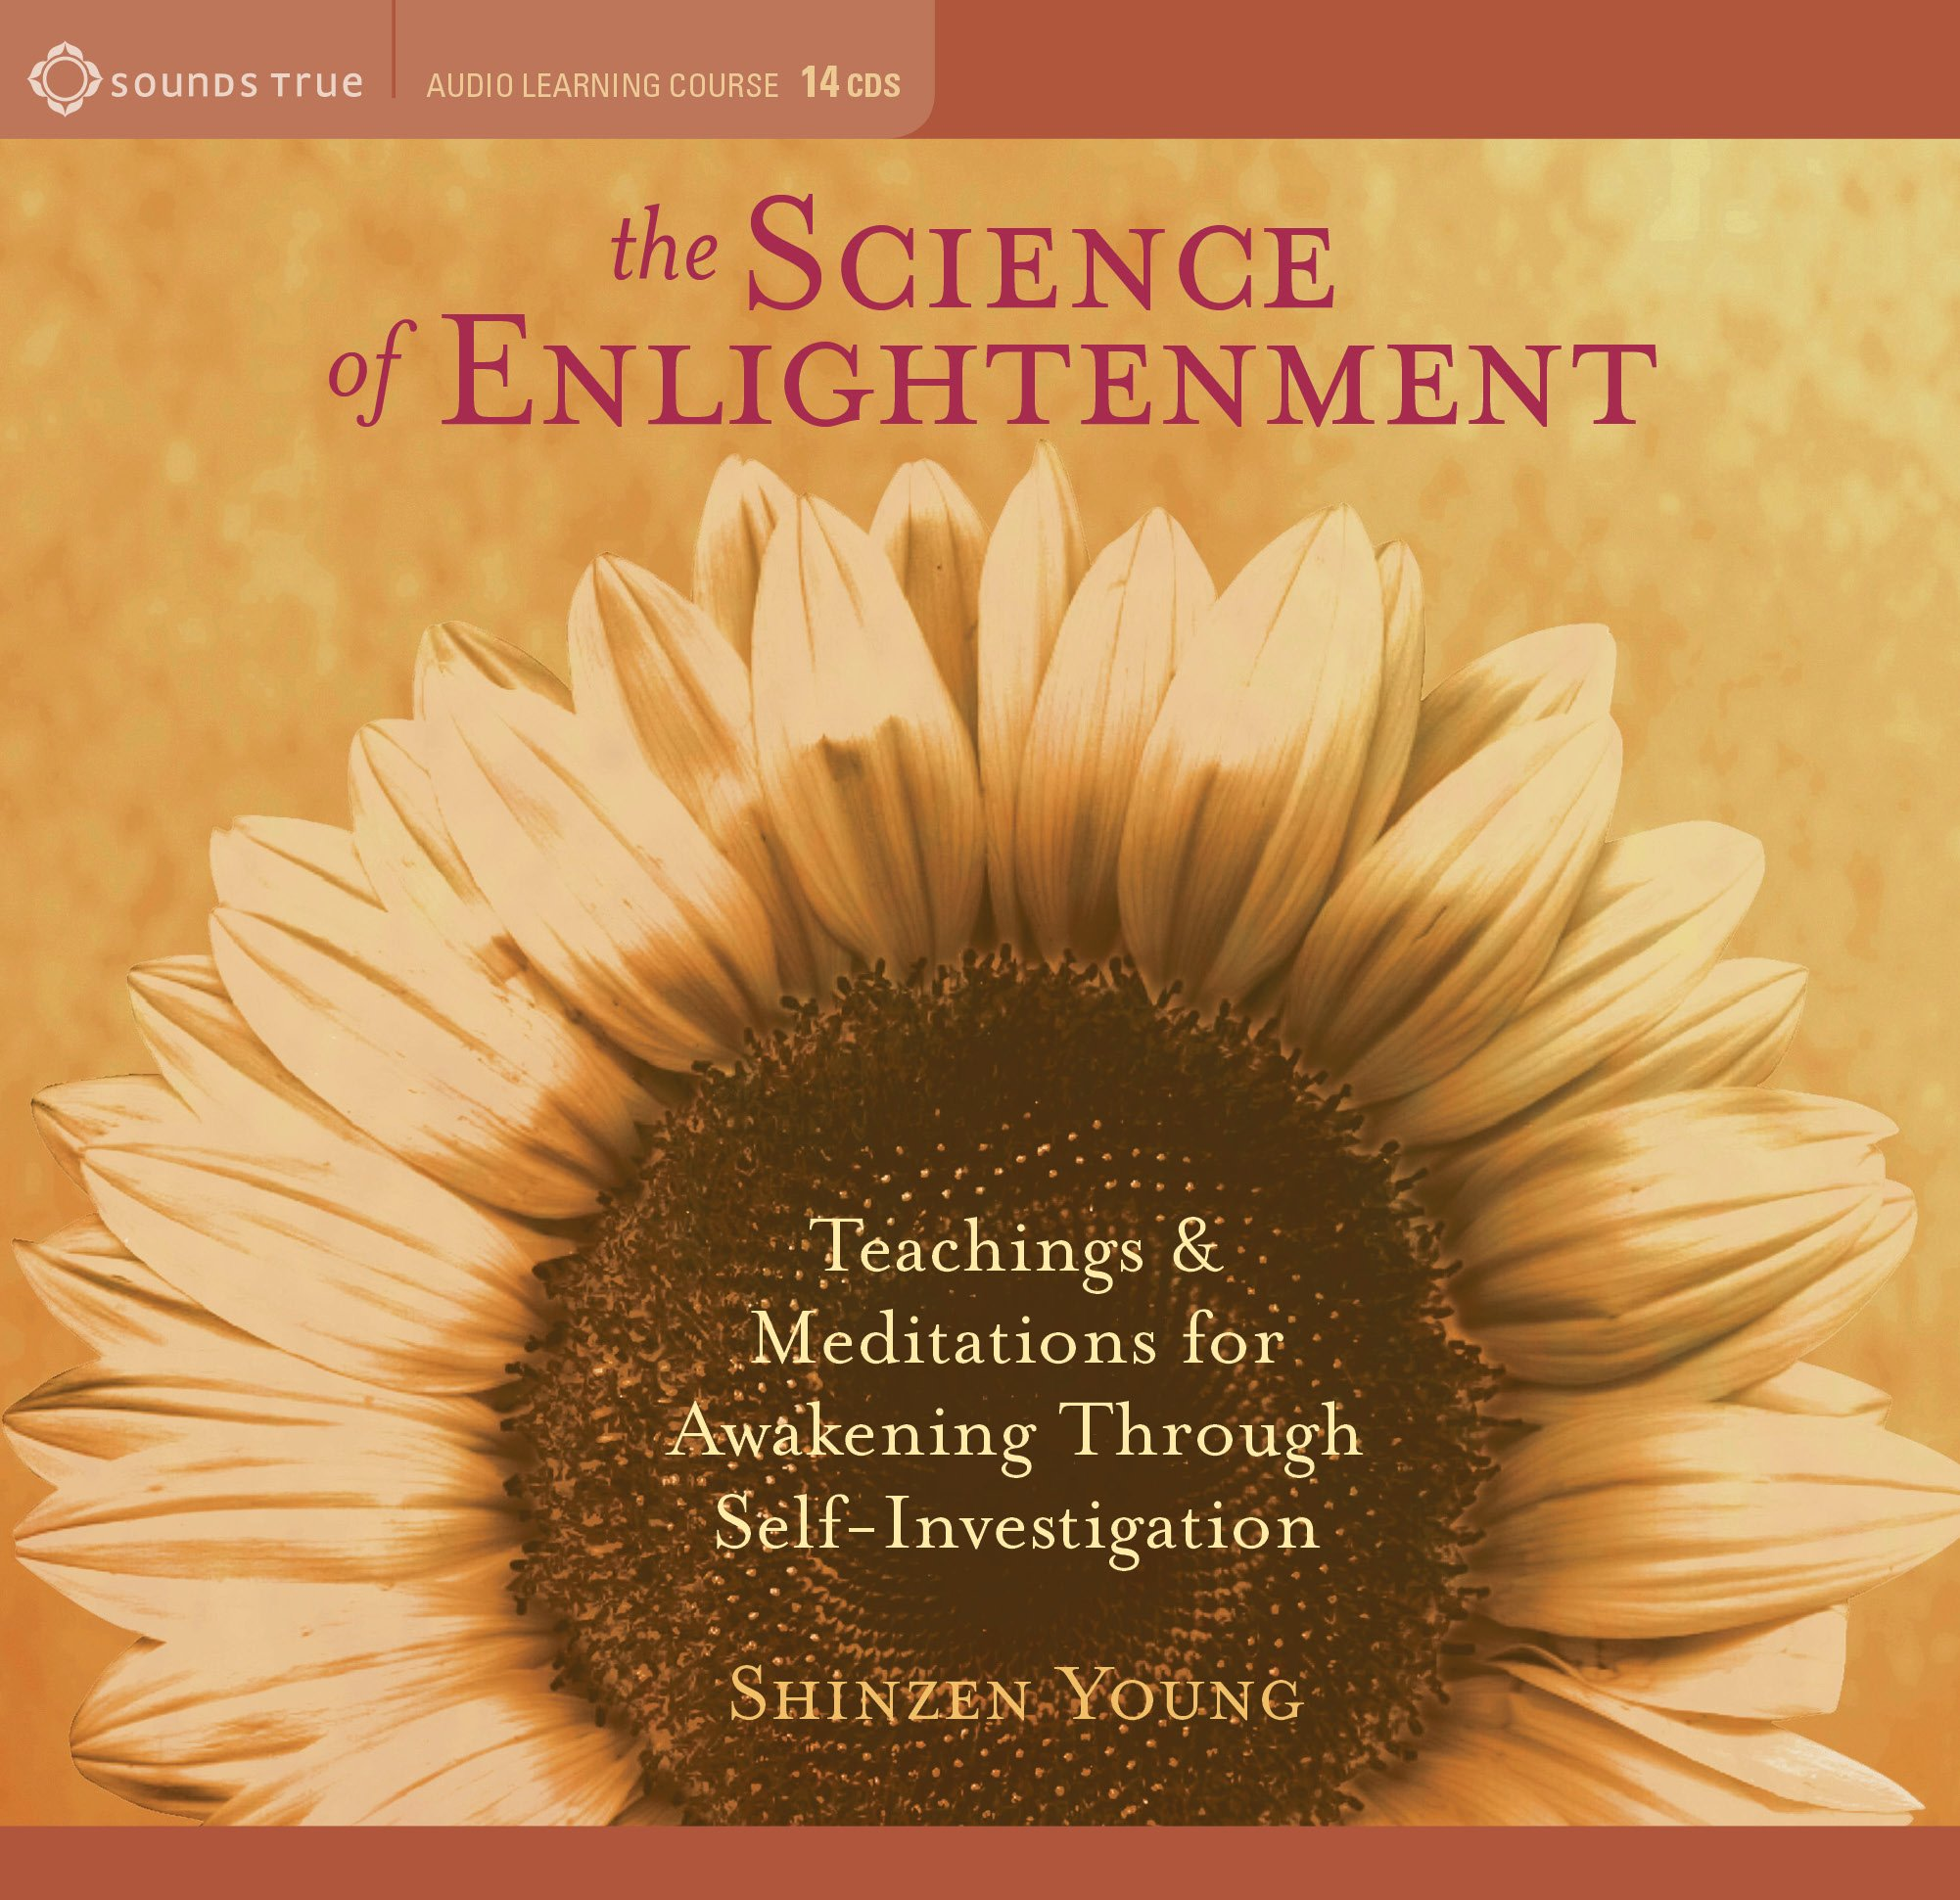 The Science of Enlightenment by SOUNDS TRUE RECORDS